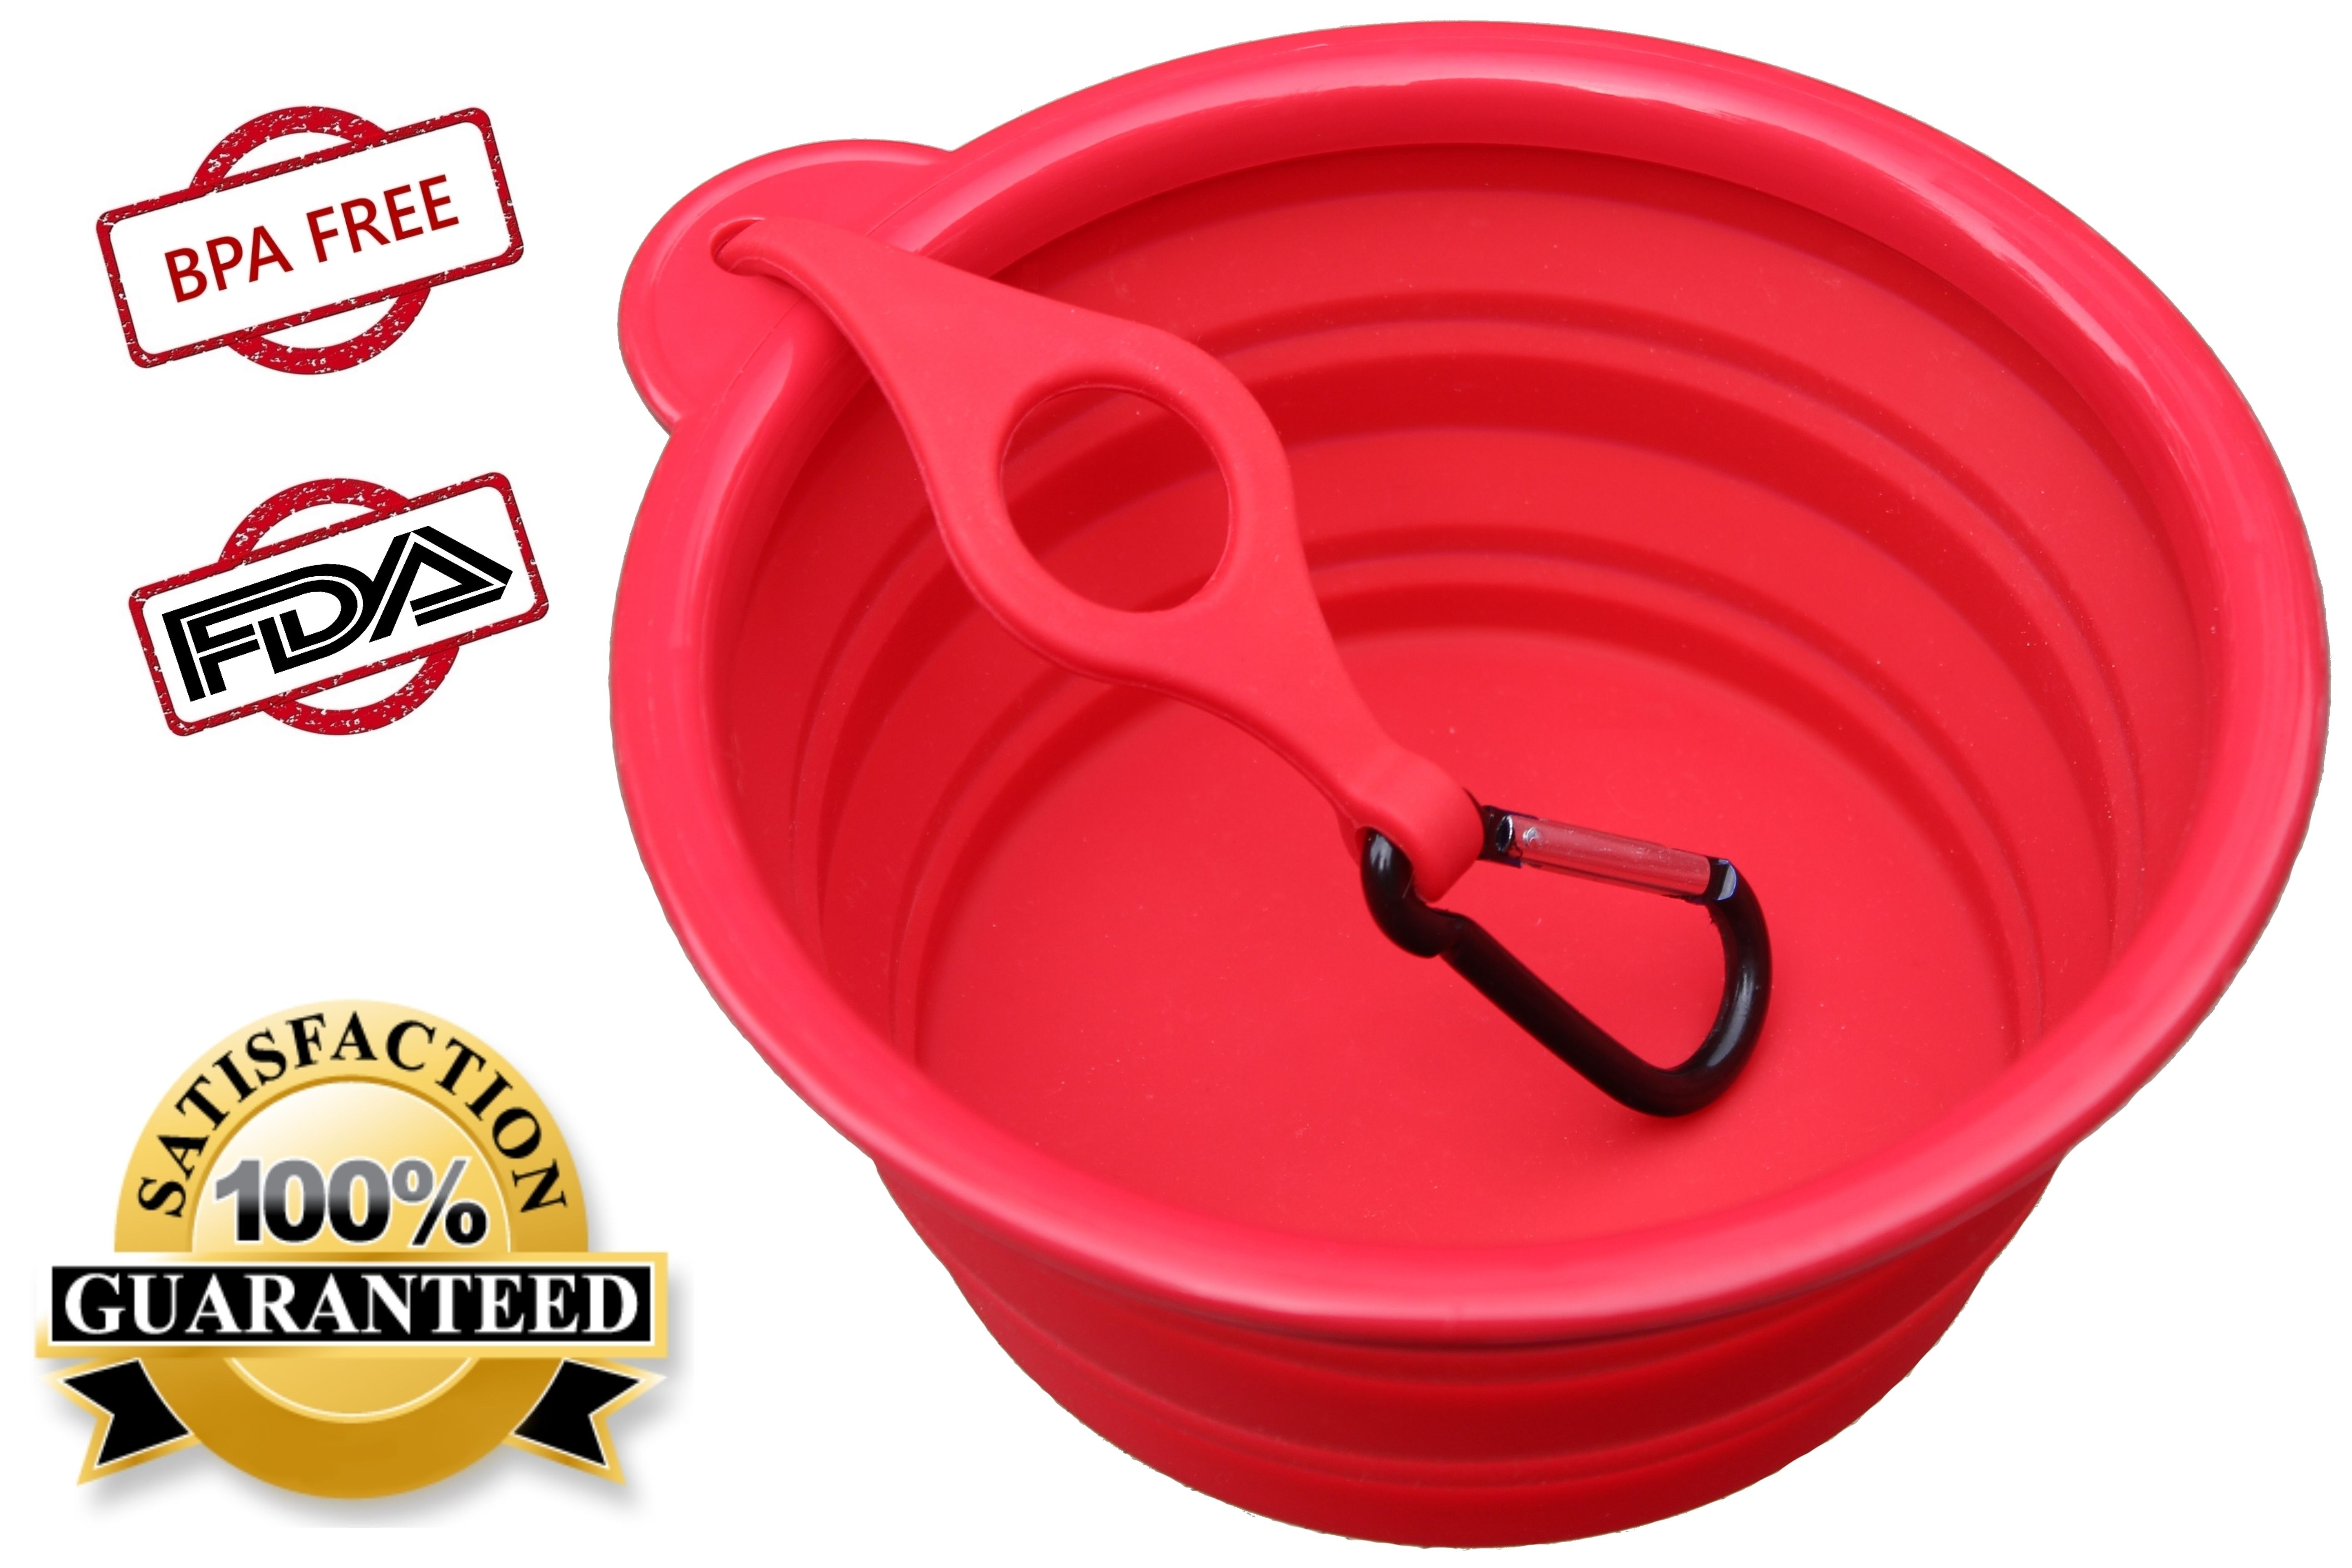 Dog Water Bowl with Bottle Harness and Carabiner Clip